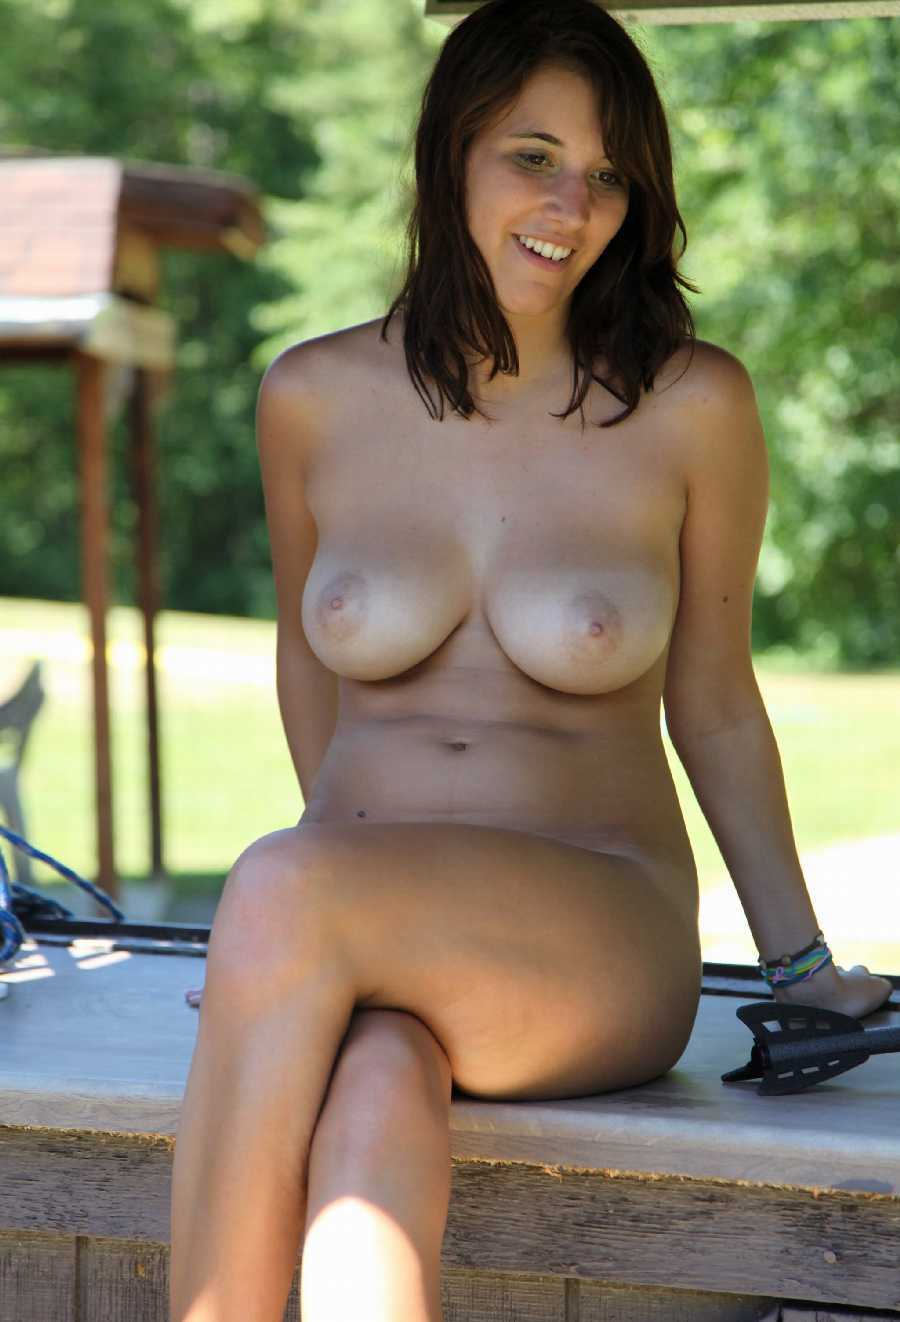 Real sexy nymph girl picture naked amature wifes